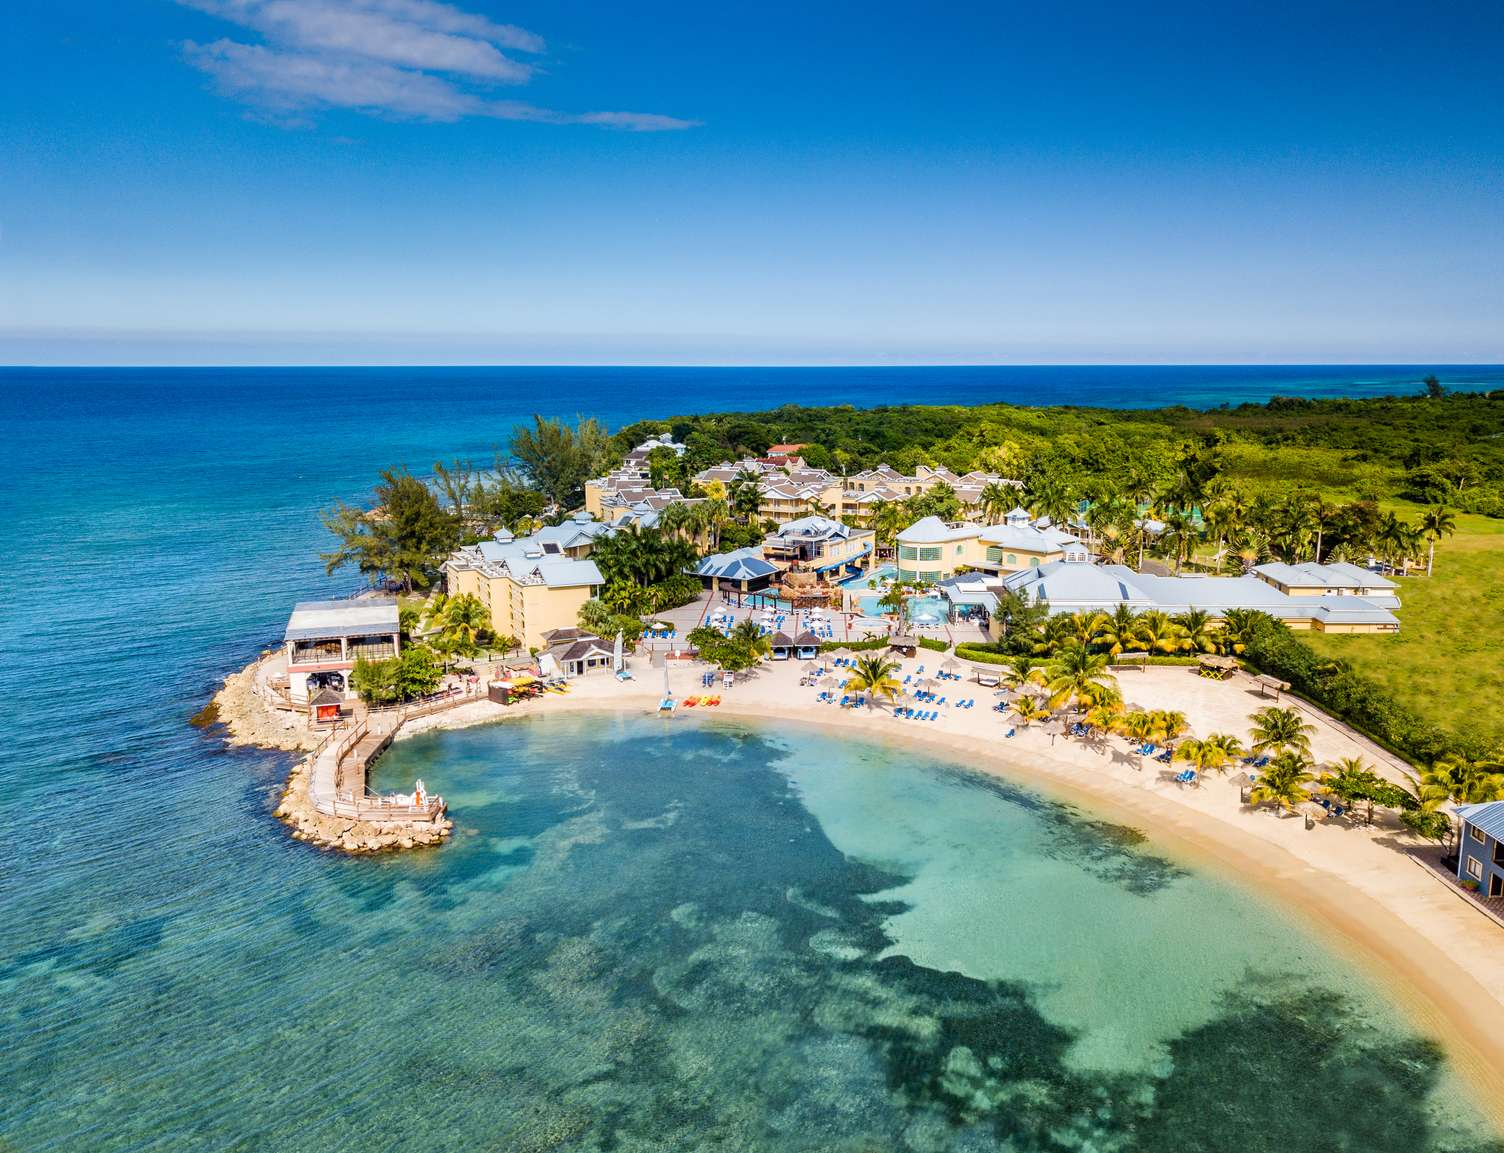 FREE Added Excursions at The Jewel Paradise Cove Resort & Spa